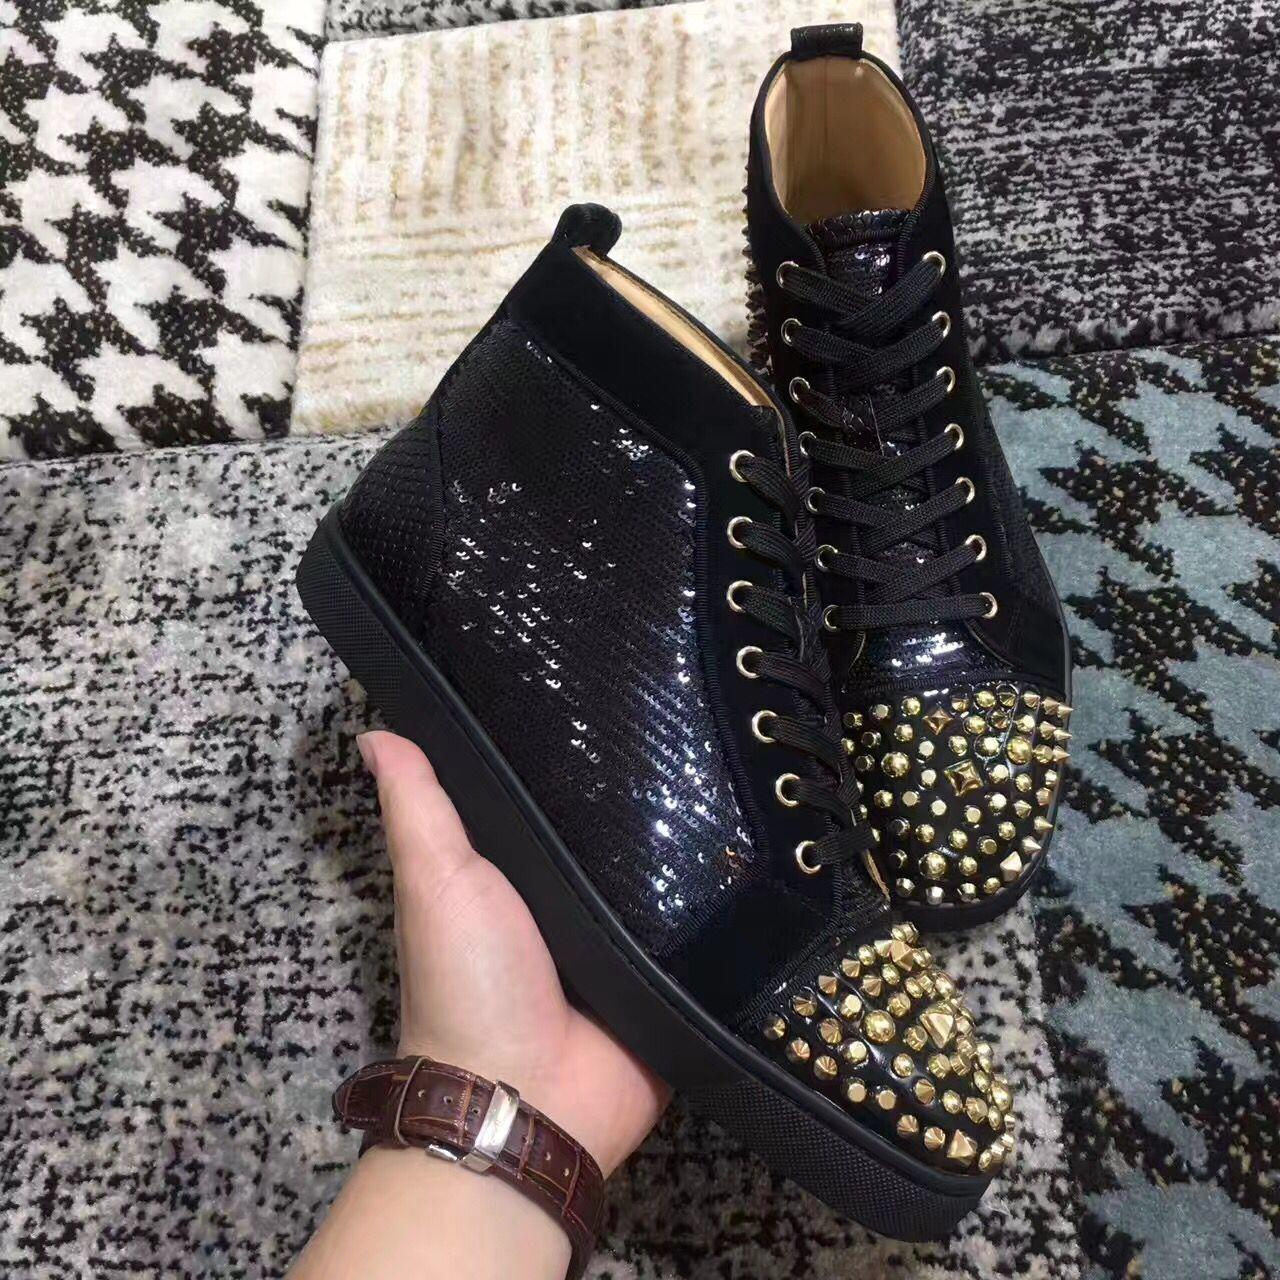 Gold Studs Spikes + Sequin High Top Red Bottom Women,Men Sneakers Shoes Outdoor Red Sole Casual Walking Lace-up Trainers Dress Wedding